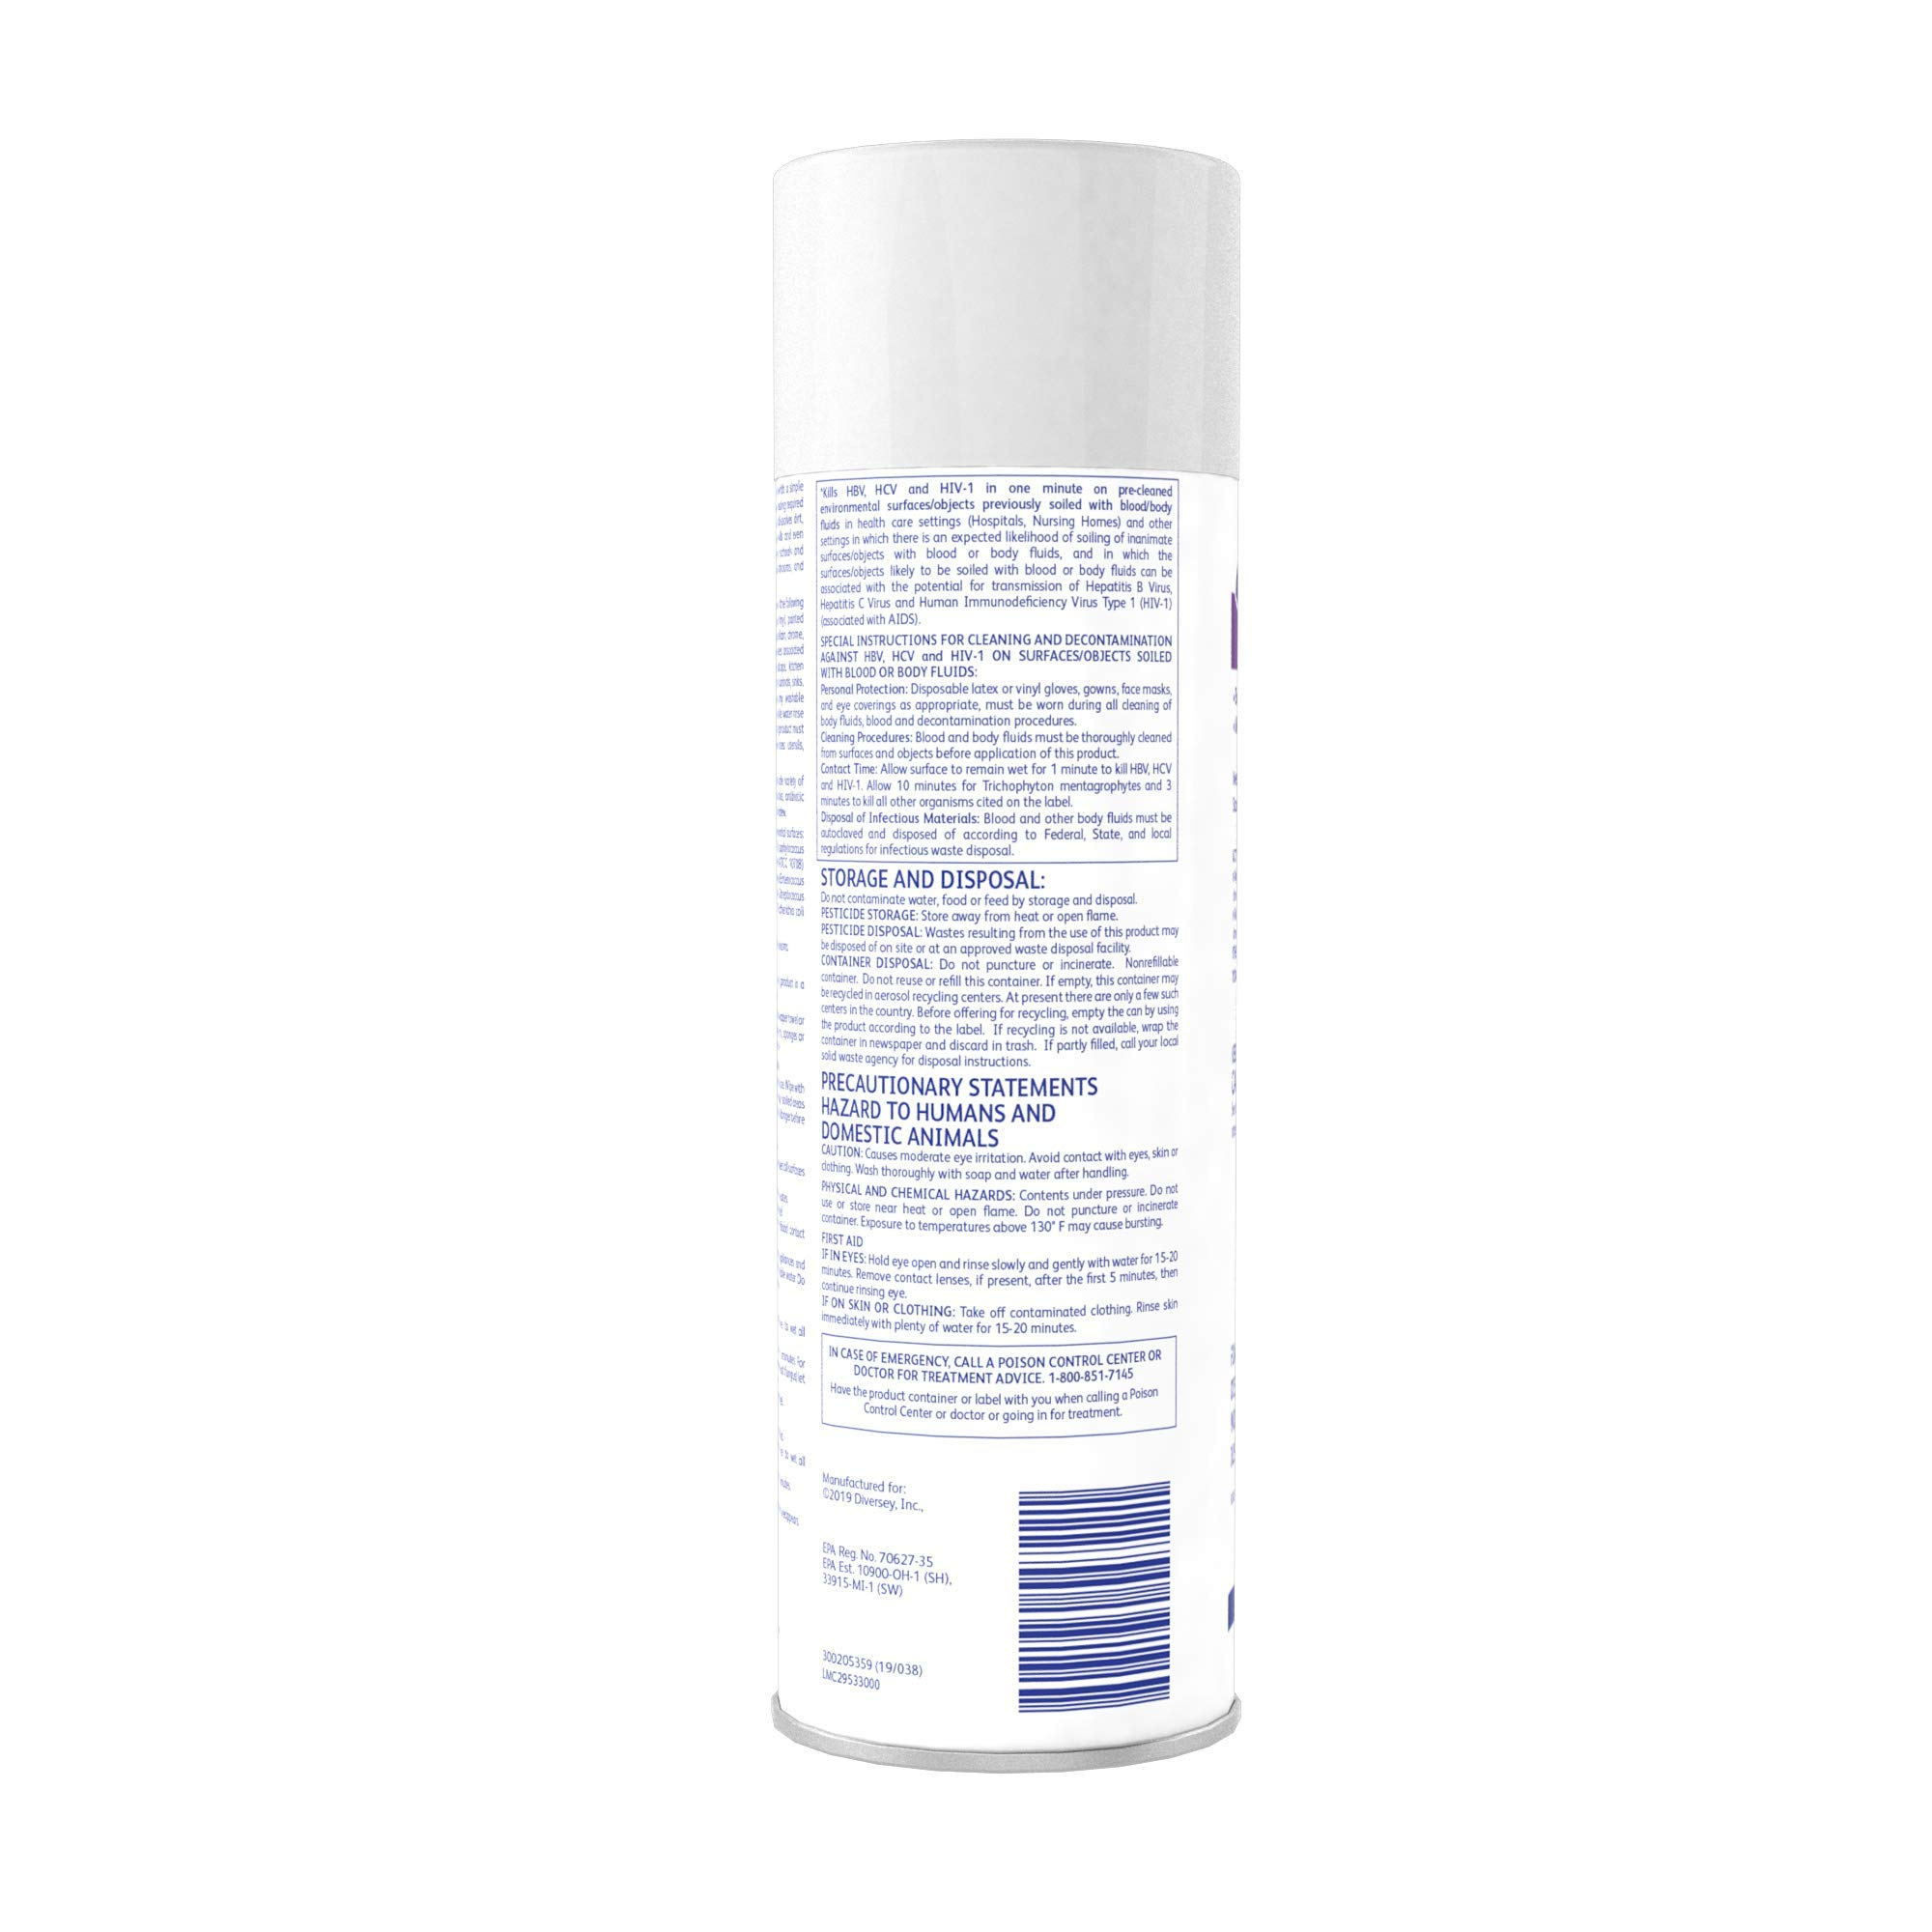 Diversey Envy 04531 Foaming Disinfectant Cleaner, 12 x 19 oz./539 g Aerosol by Diversey (Image #5)